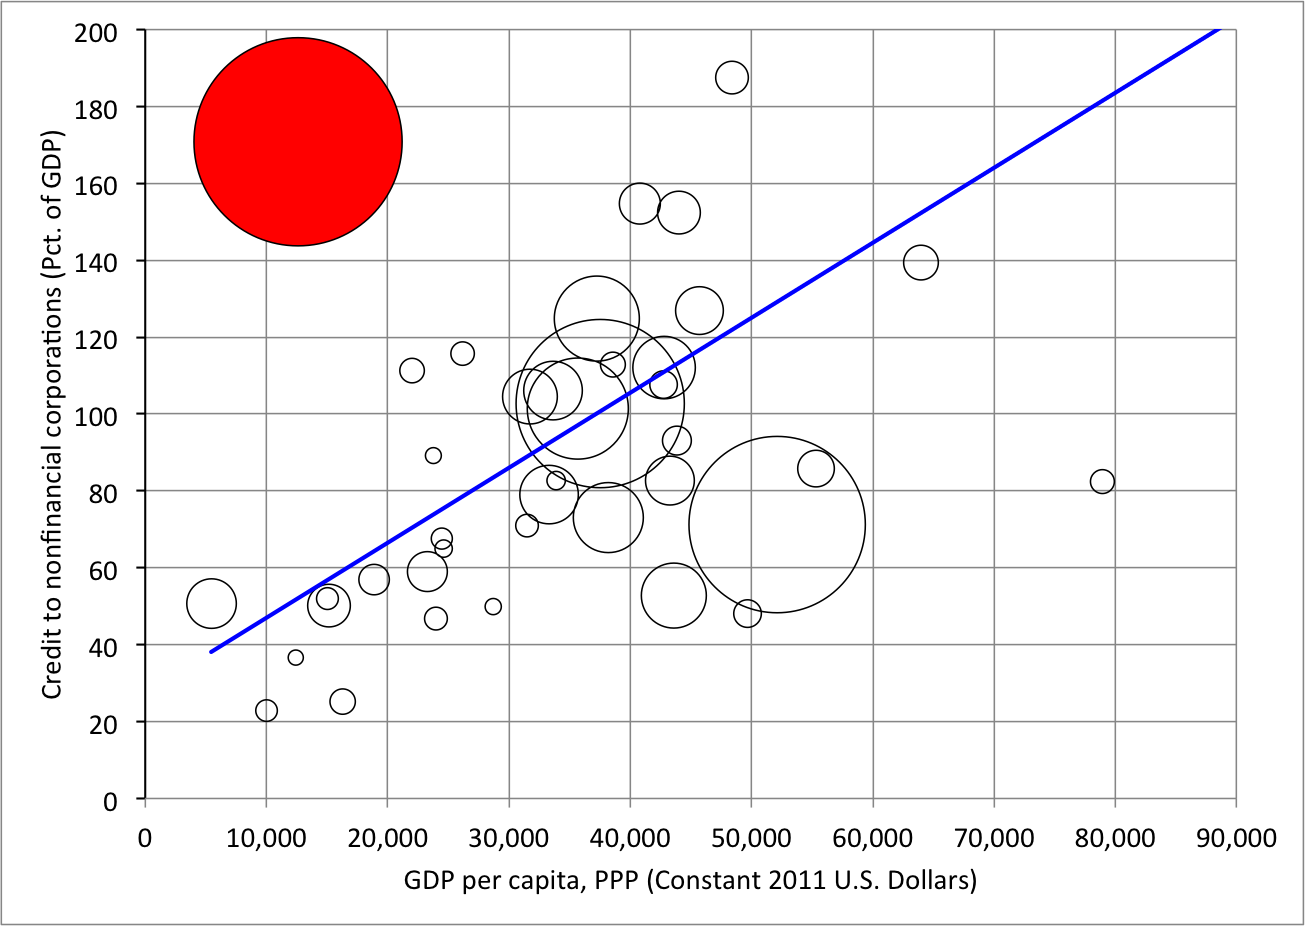 Notes: The size of each circle represents credit measured in U.S. dollars. China is shown in red. The fitted line is shown in blue. Sources: Bank for International Settlements and World Bank.